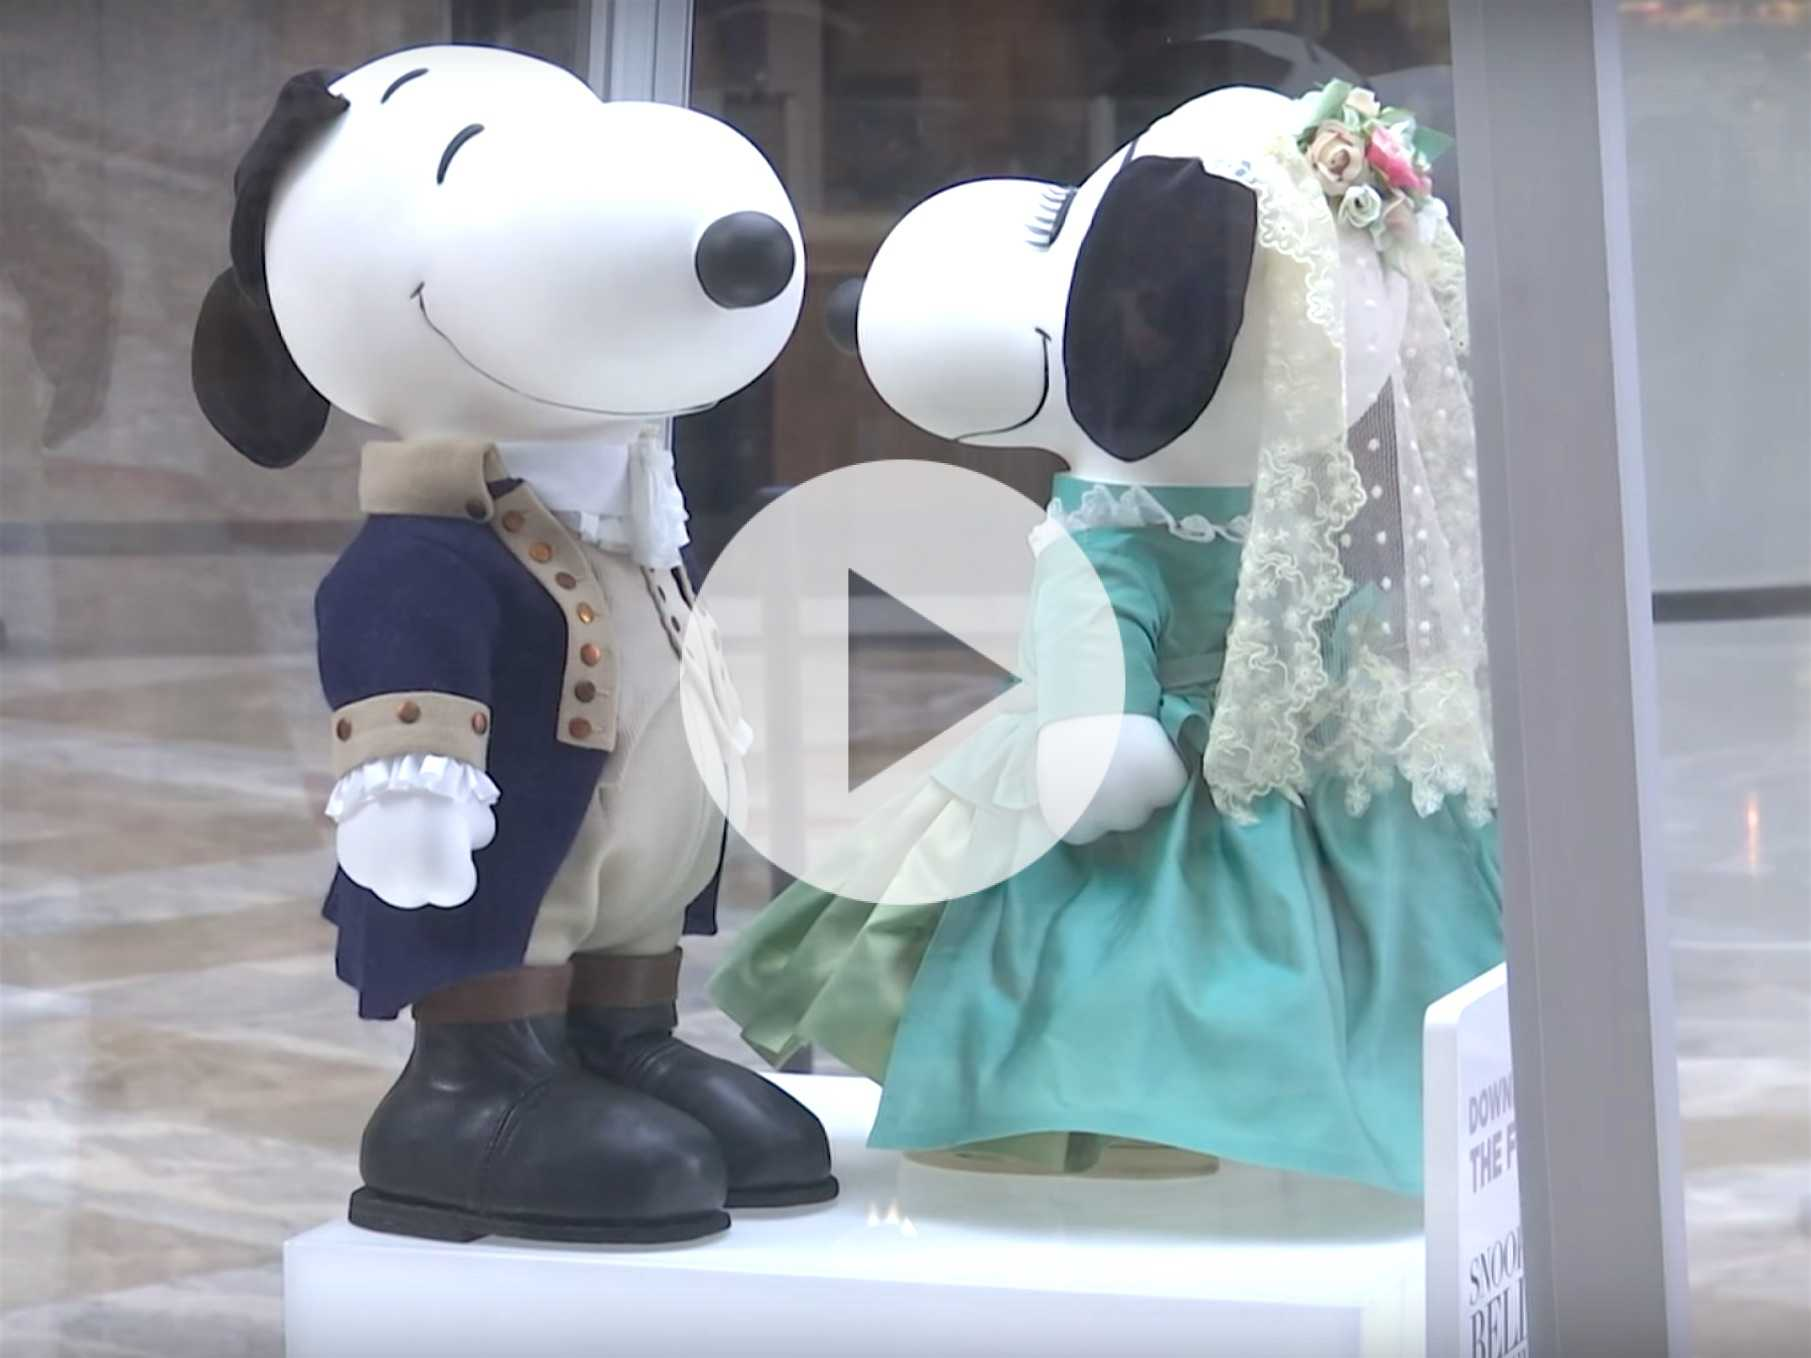 Snoopy Gets a Makeover at New York Fashion Week